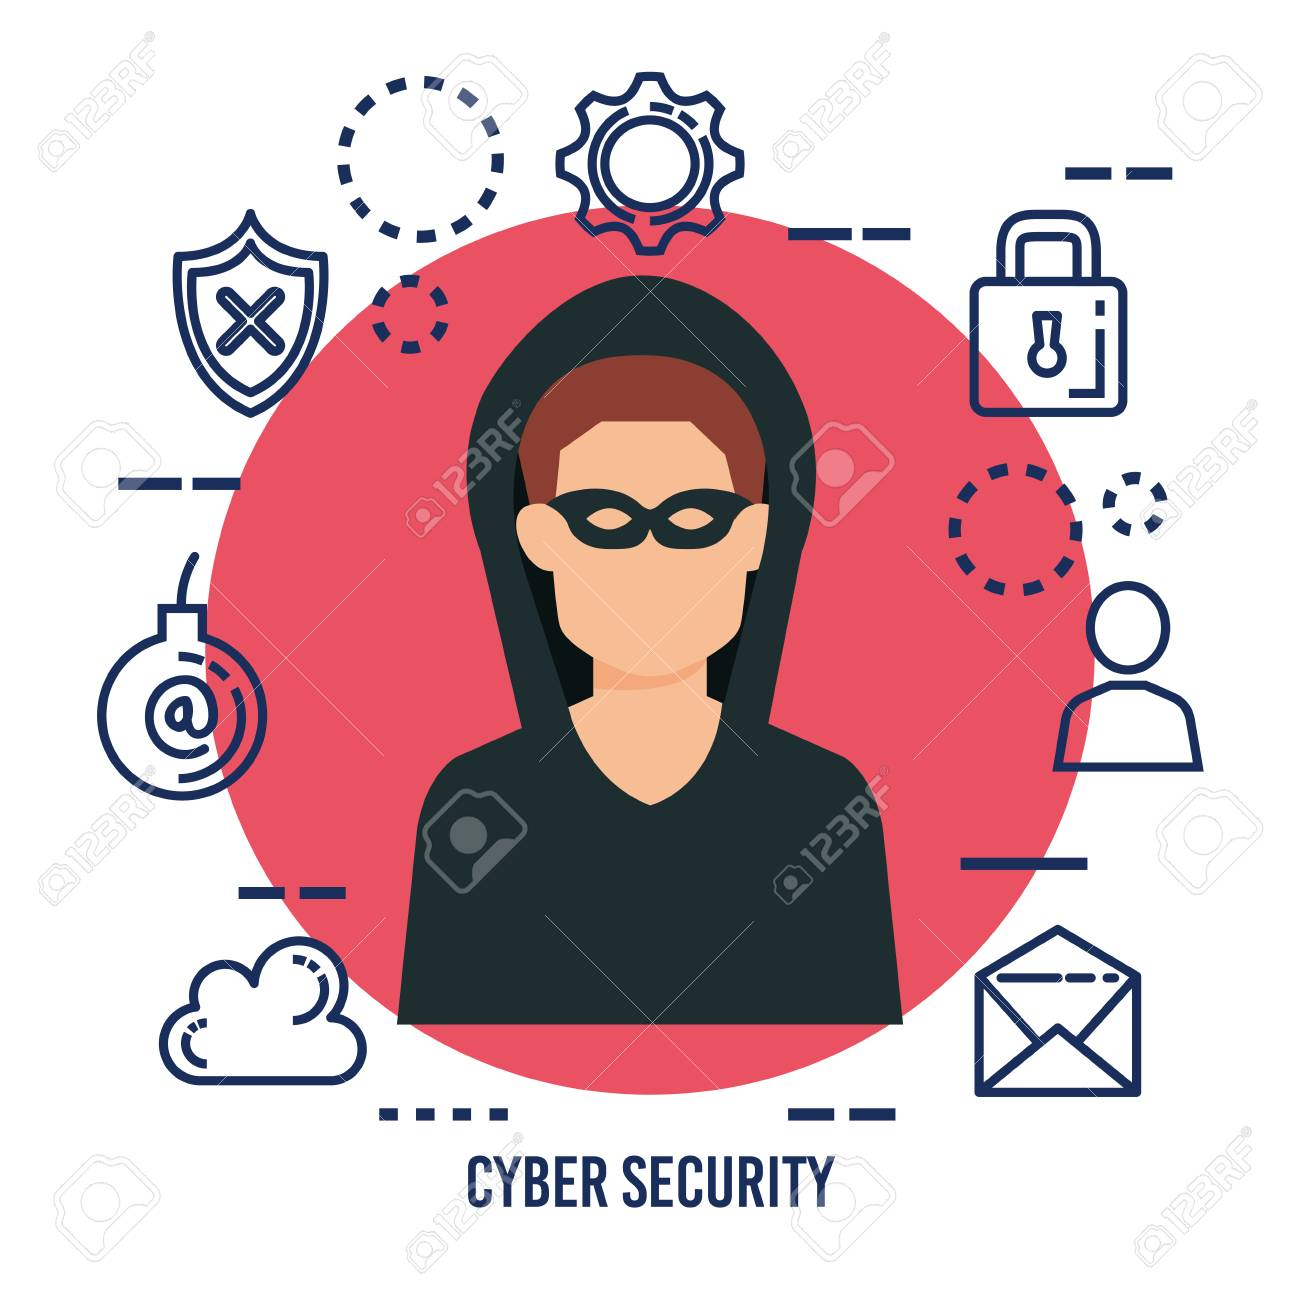 data center security with hacker vector illustration design royalty free cliparts vectors and stock illustration image 112684325 123rf com